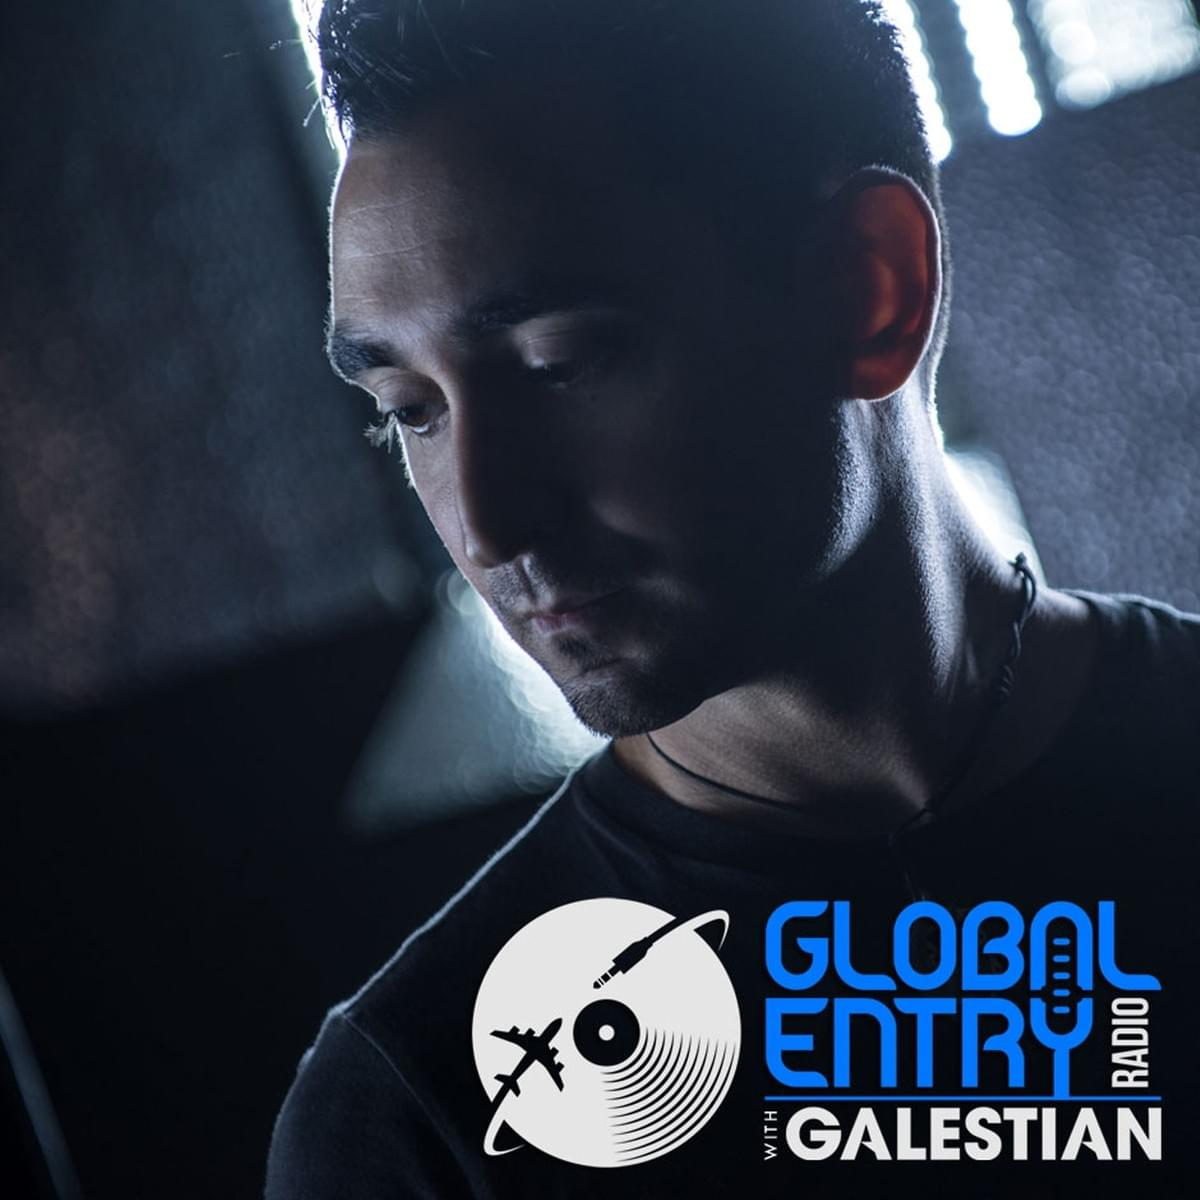 Global Entry Radio with Galestian